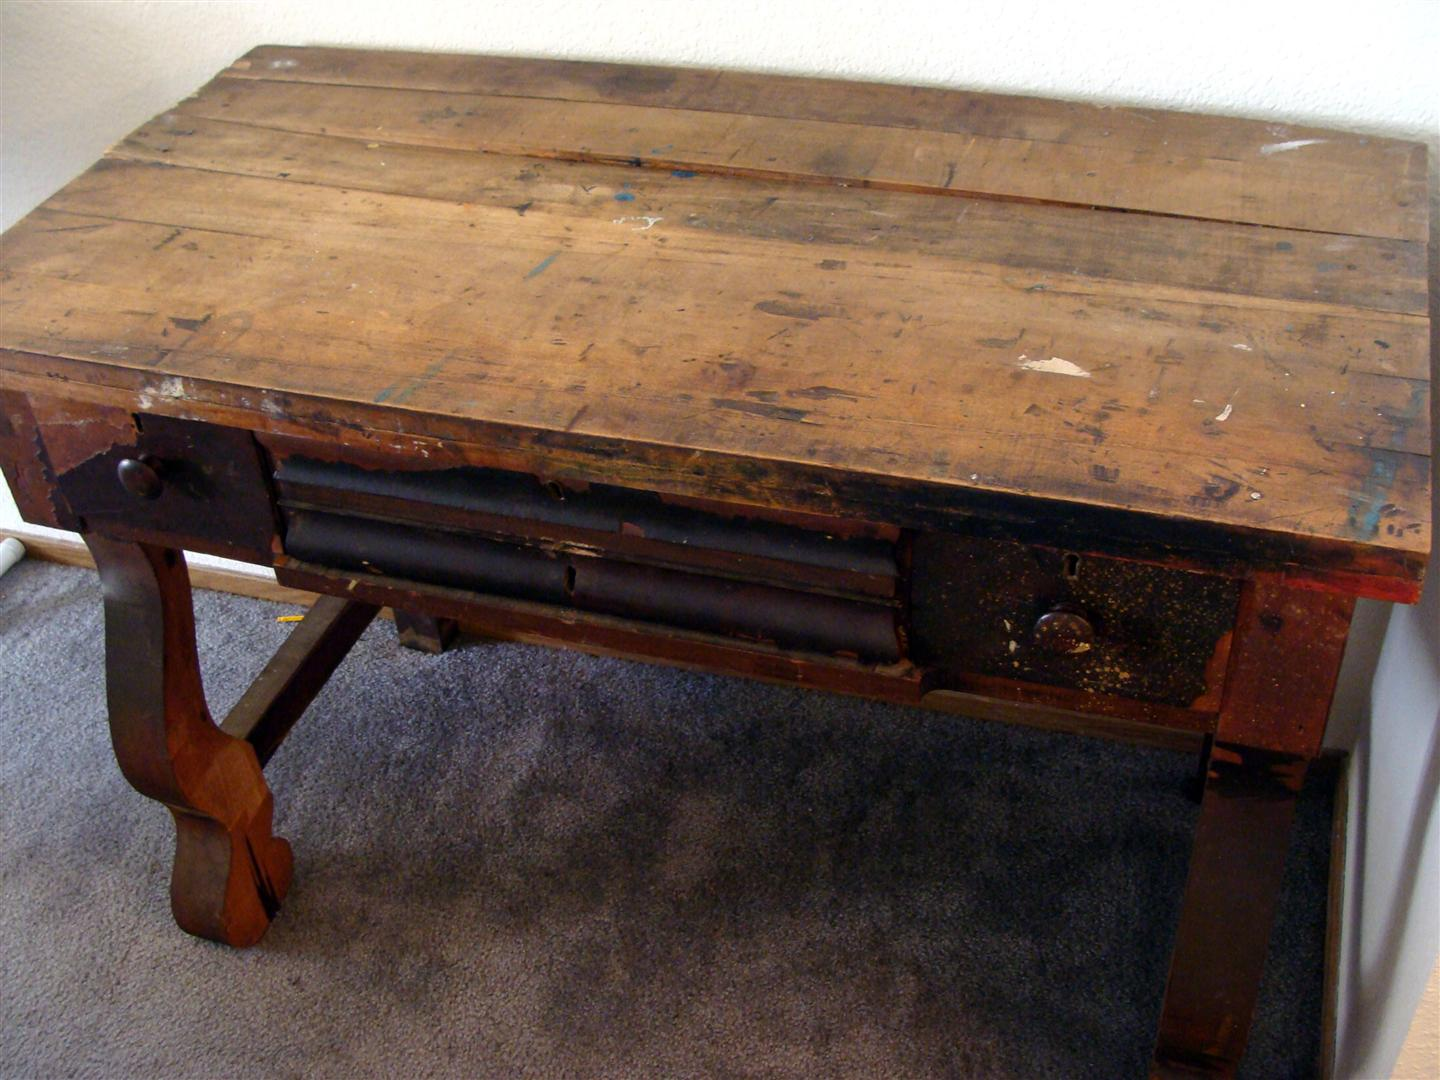 diddle dumpling: Antique Writing Desk Transformation: The Reveal!